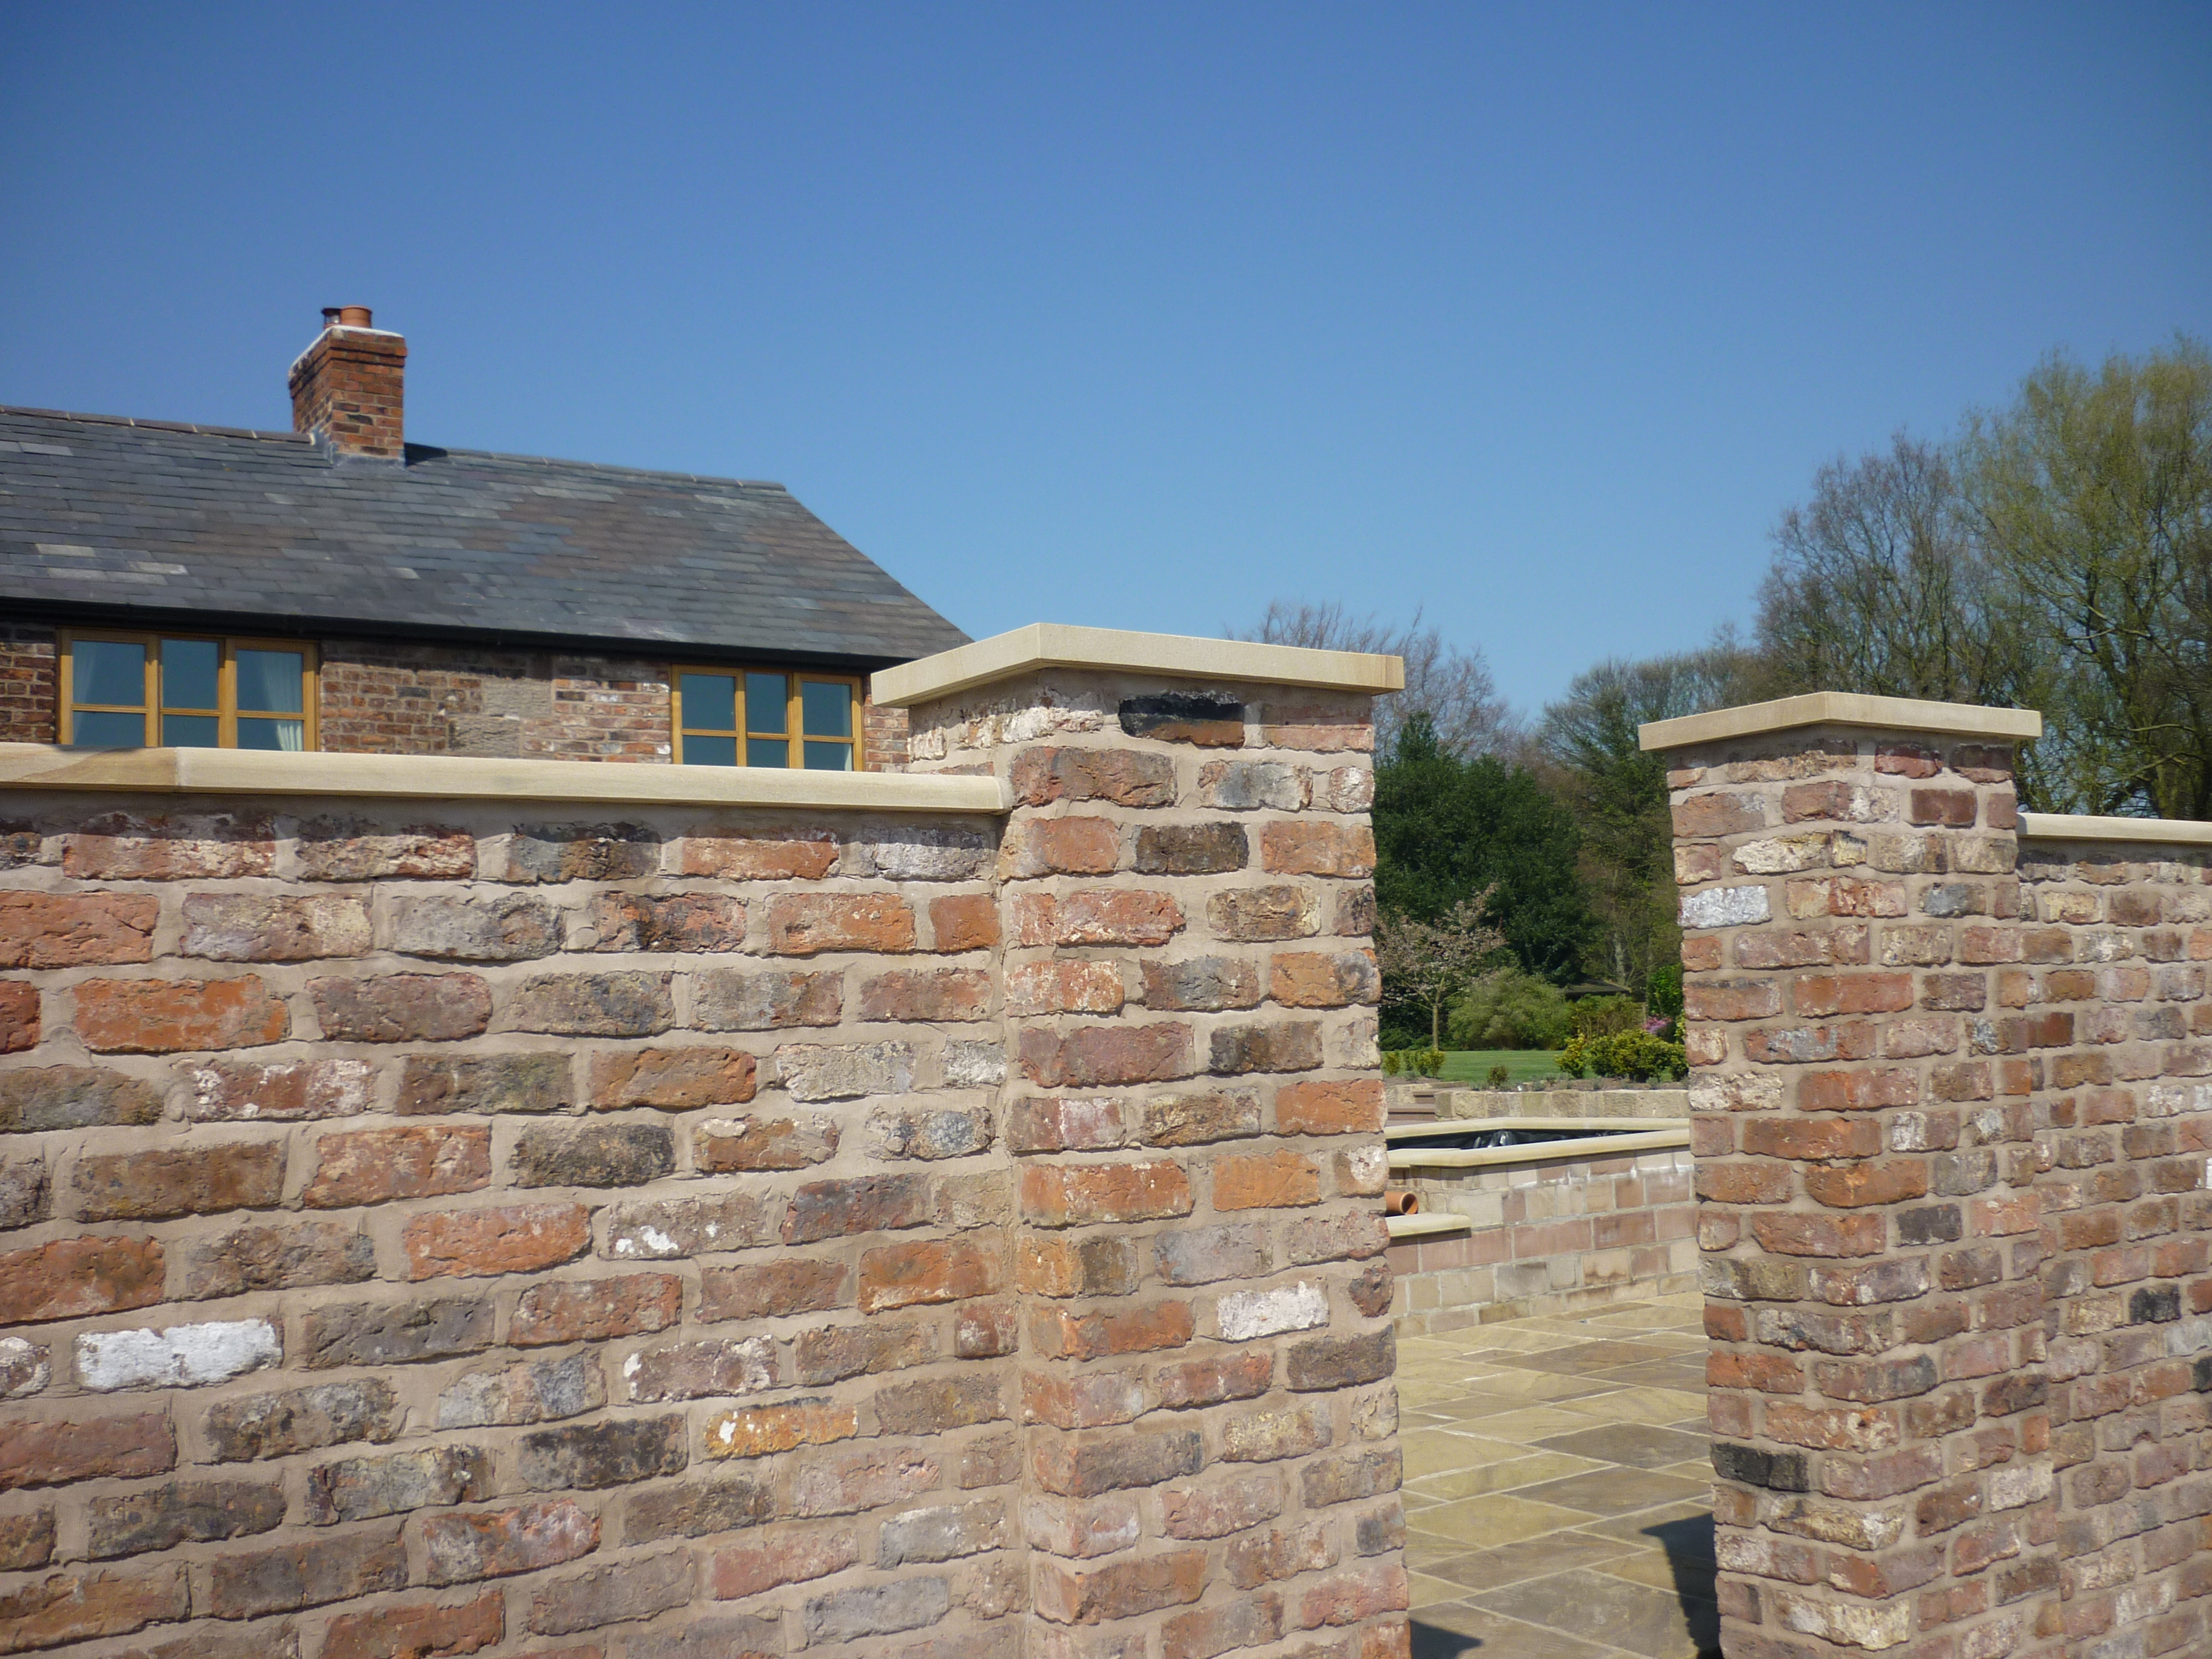 Yorkstone copings and caps